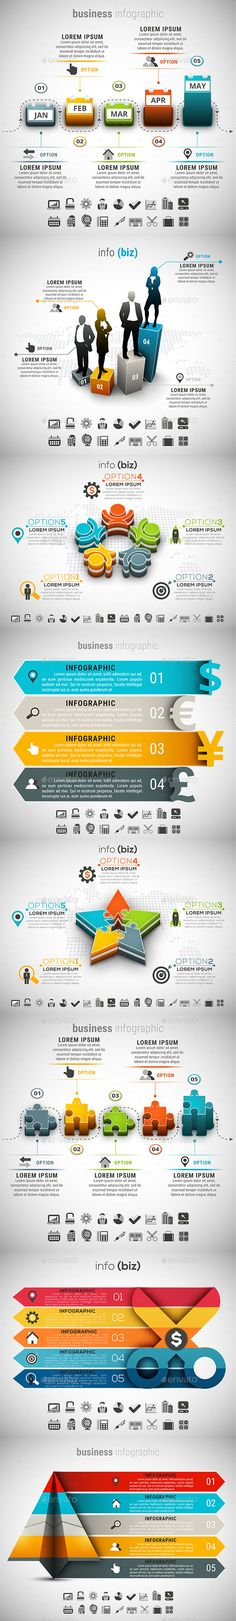 8 in 1 Business Infographics Template Bundle - PSD, Vector EPS, AI Illustrator